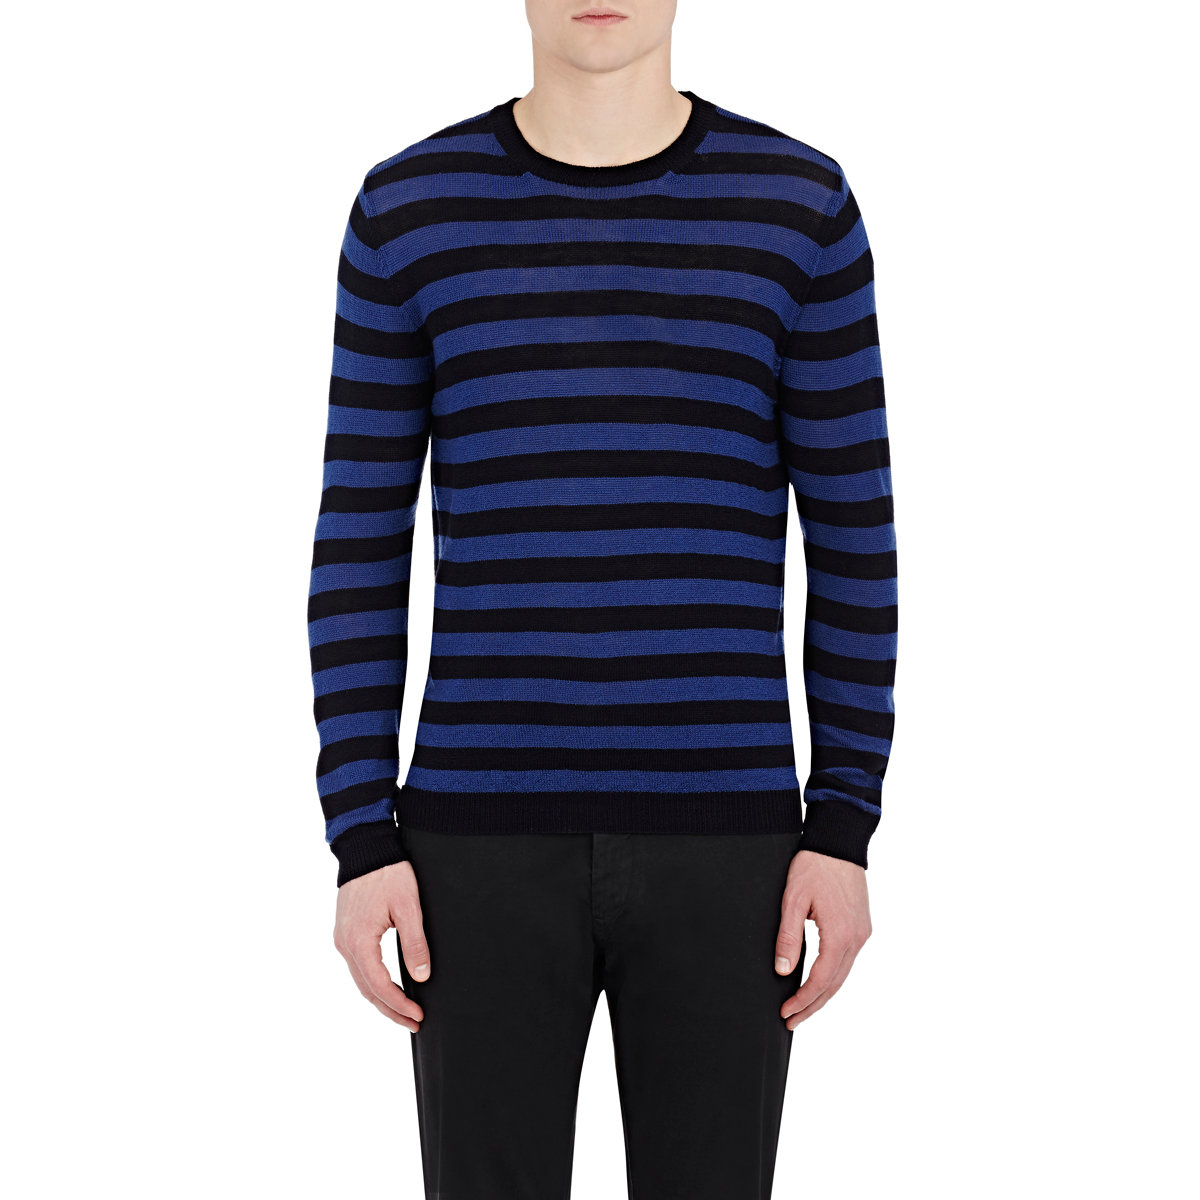 Buy Off-White c/o Virgil Abloh Men's Black Striped Sweater. Similar products also available. SALE now on!Price: $